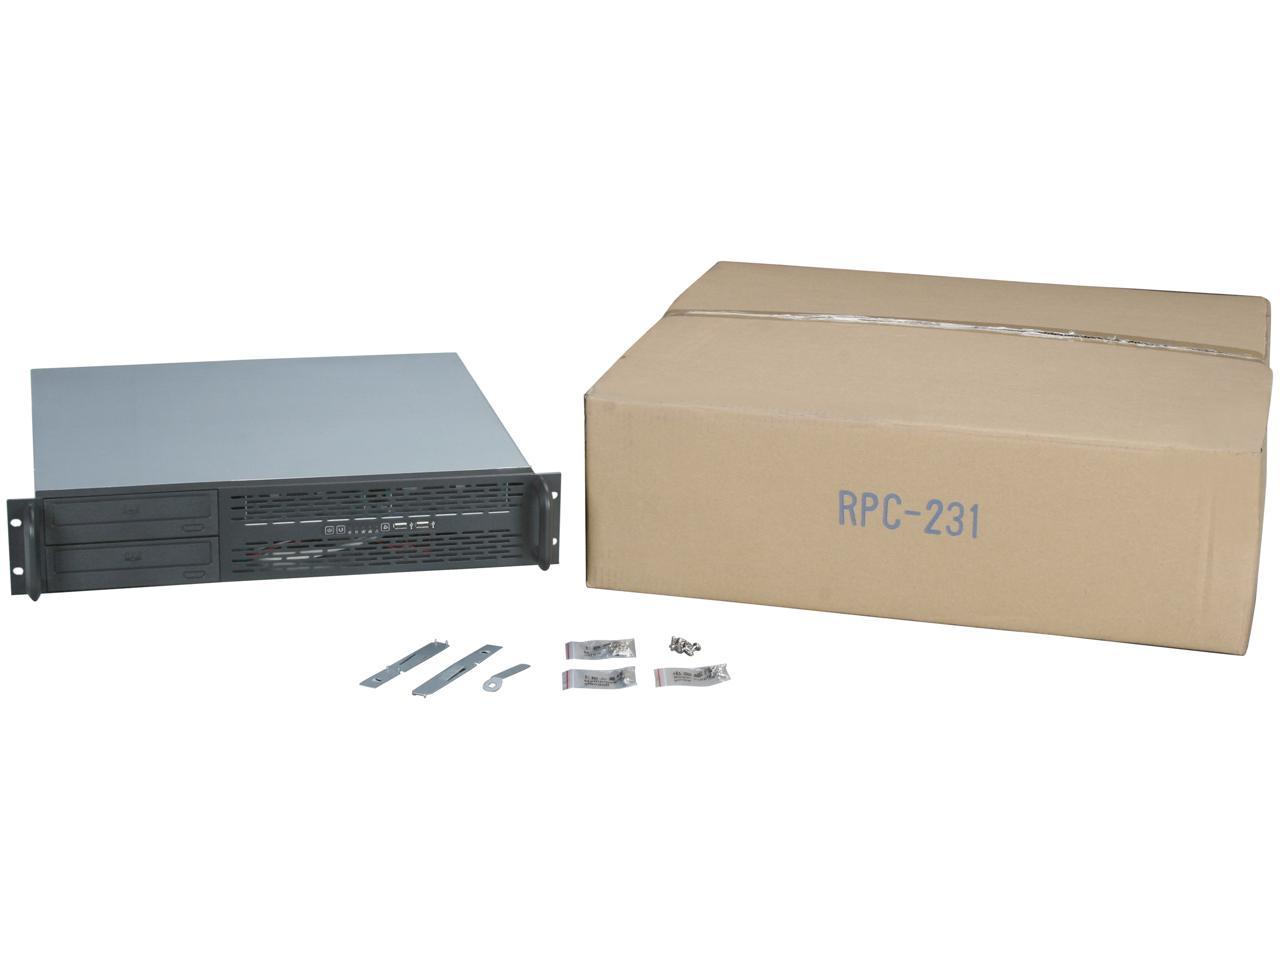 "NORCO RPC-231 Black 2U Rackmount Server Chassis 2 External 5.25"" Drive Bays"